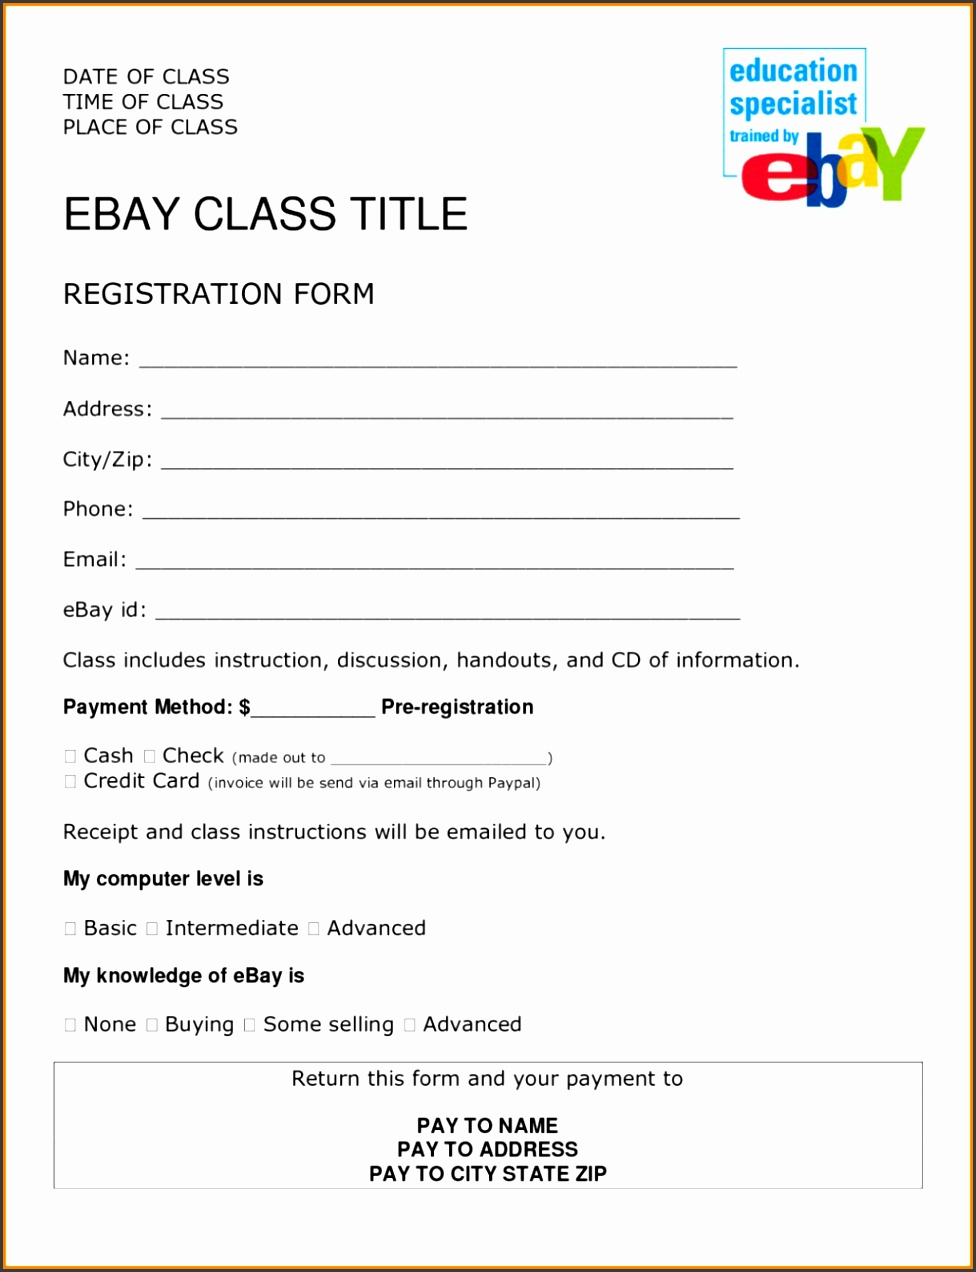 Printable registration form template 2 4 job format ledger paper camp templates creative portray school word